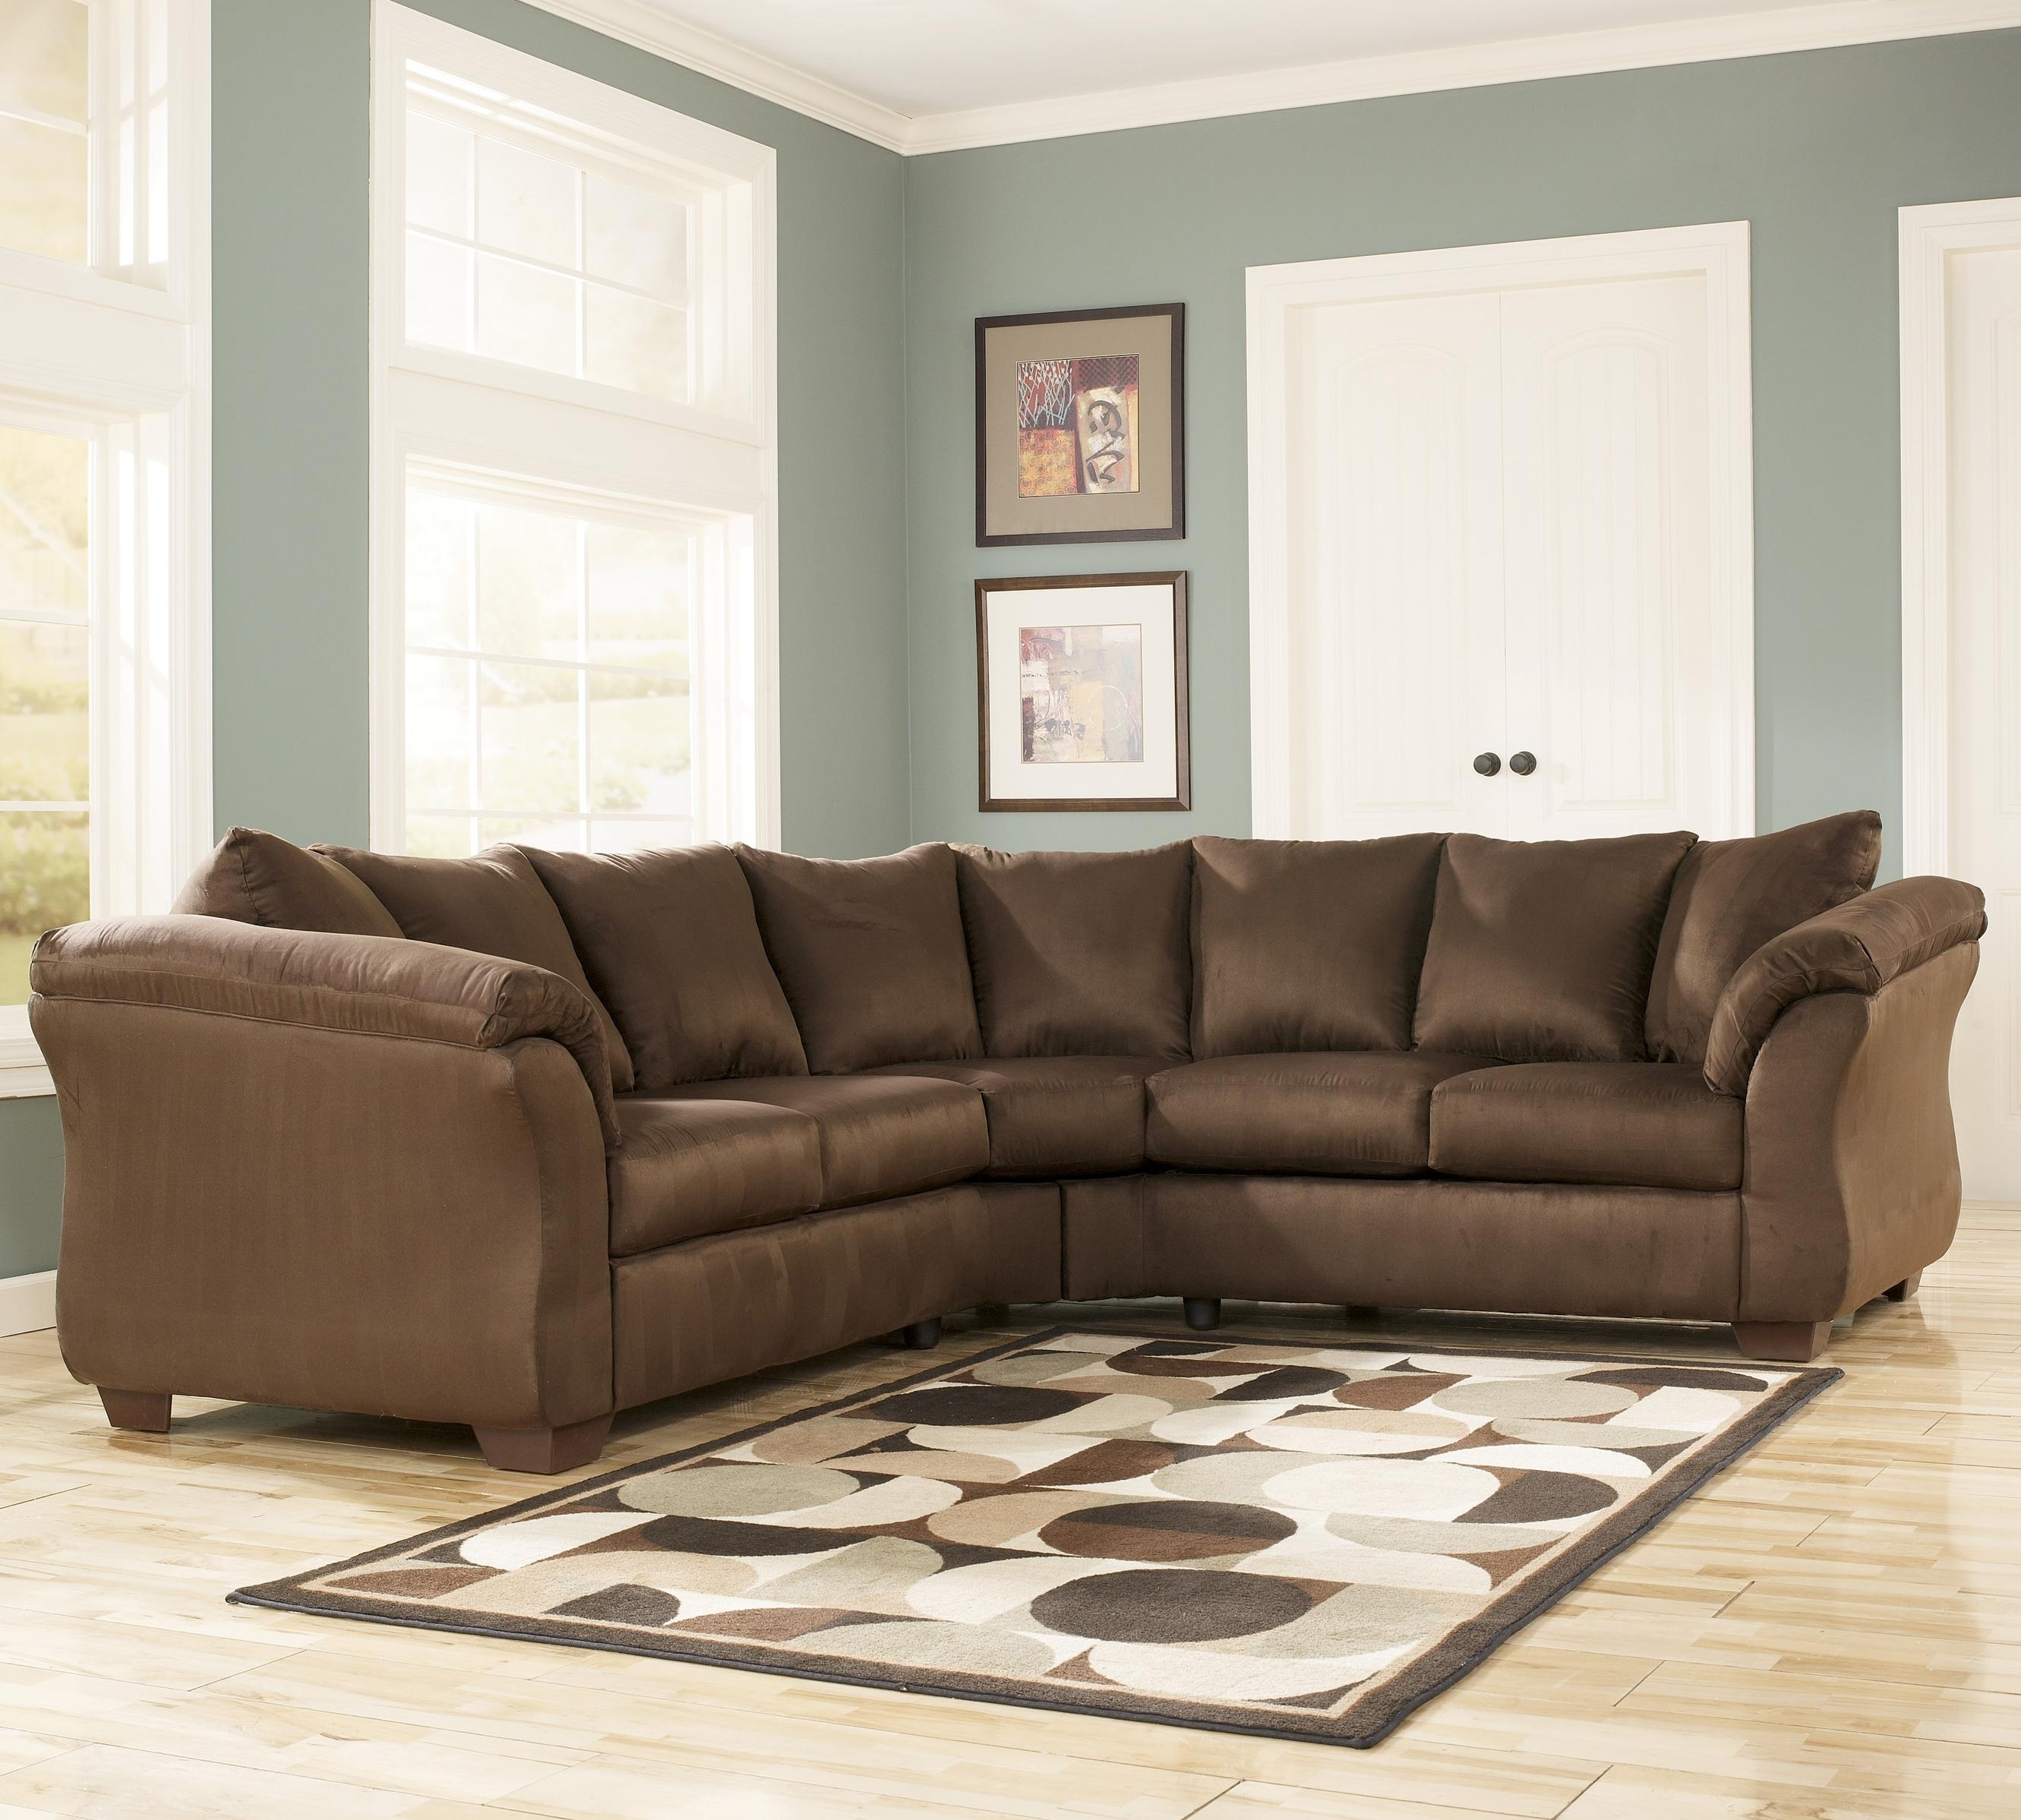 Signature Designashley Darcy – Cafe Contemporary Sectional Sofa For Jacksonville Nc Sectional Sofas (View 6 of 10)